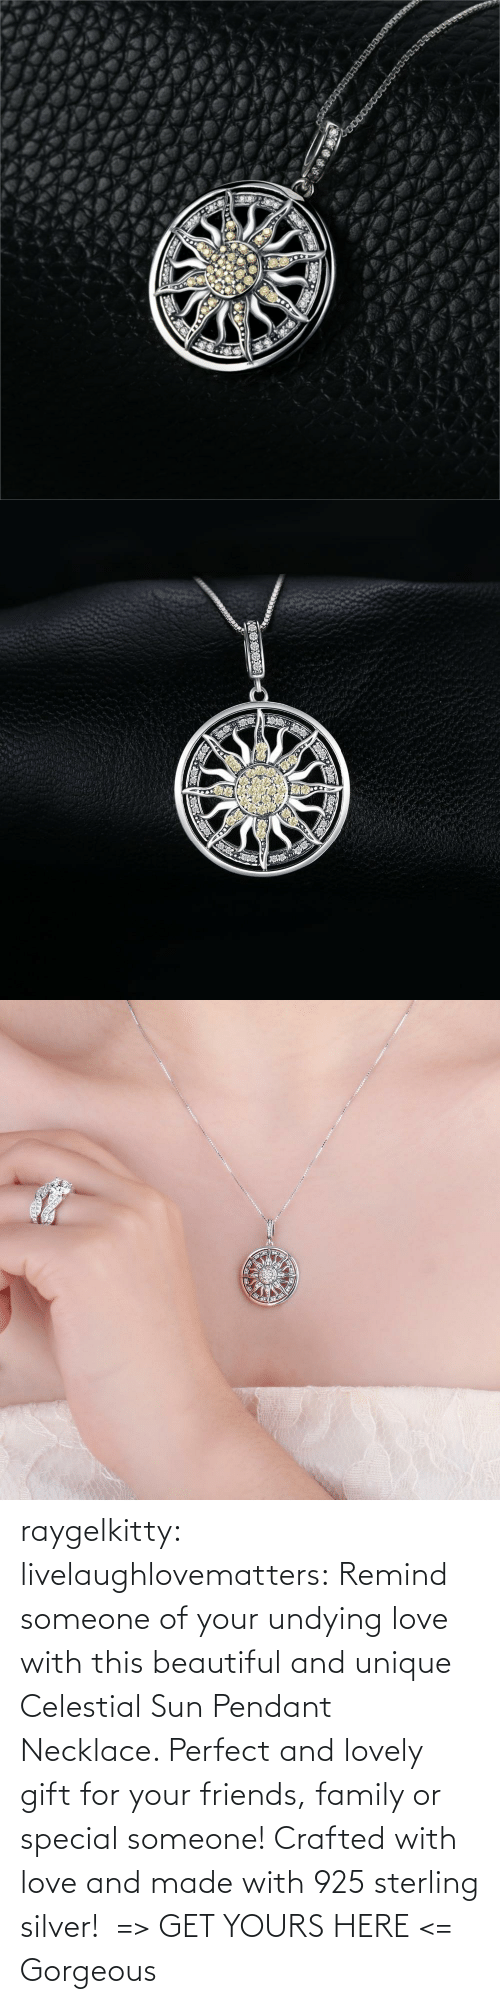 family: raygelkitty:  livelaughlovematters: Remind someone of your undying love with this beautiful and unique Celestial Sun Pendant Necklace. Perfect and lovely gift for your friends, family or special someone! Crafted with love and made with 925 sterling silver! => GET YOURS HERE <=    Gorgeous